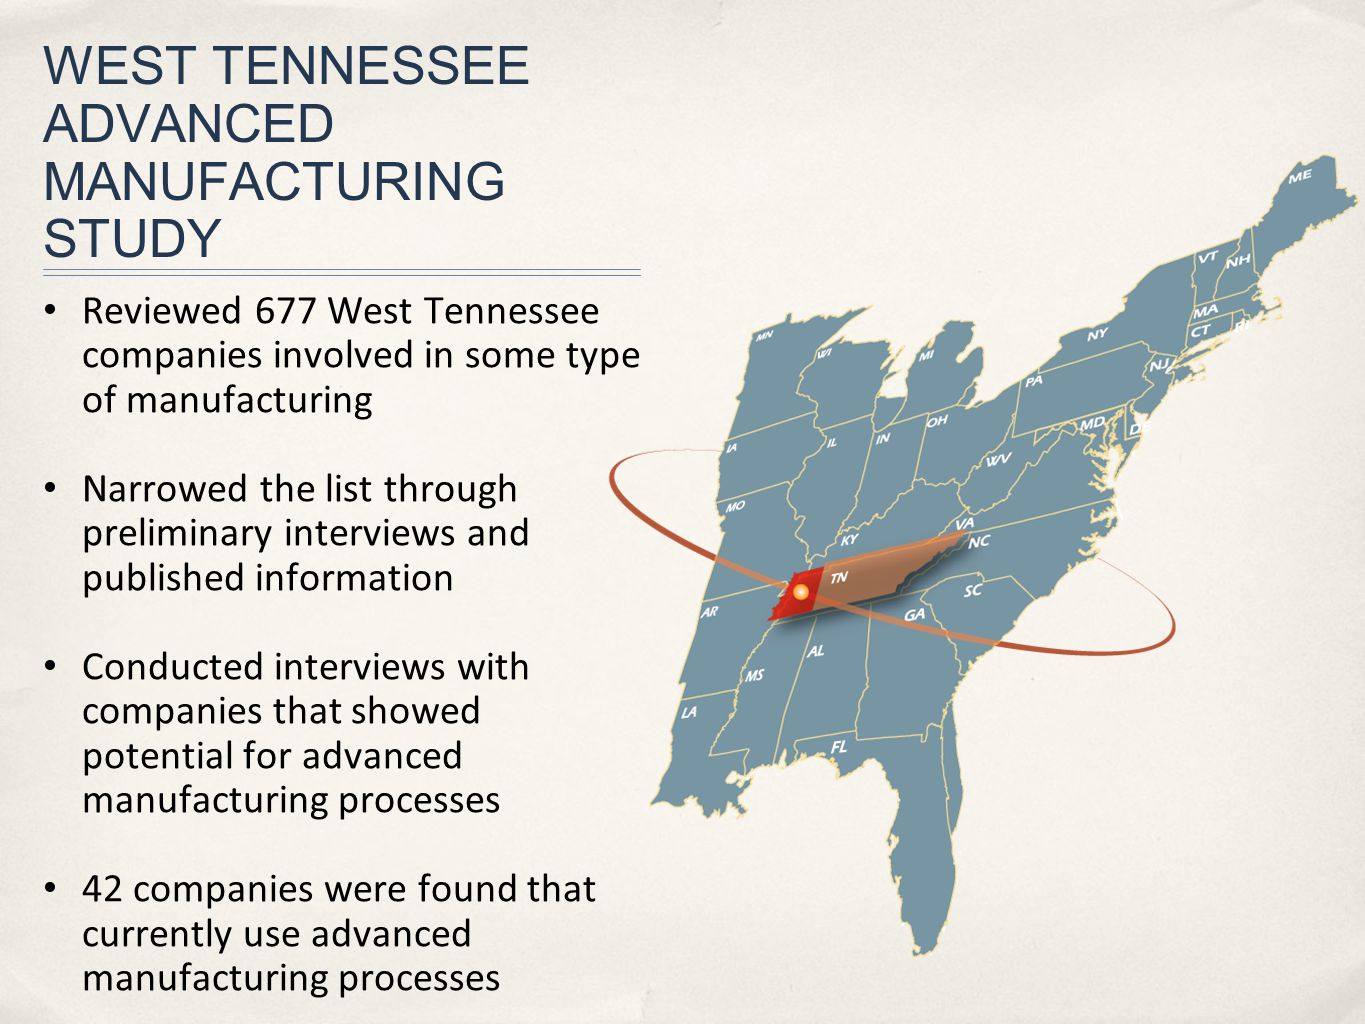 WEST TENNESSEE ADVANCED MANUFACTURING JOBS IN DEMAND IN INDUSTRIES SURVEYED CategoryCurrentYear 1 Plant and System Operators, All Other0100 Team Assemblers30 Welders1618 Mechanical Drafters, Engineering & Mapping Technicians 1011 Electrical and Electronics Repairers, Commercial and Industrial Equipment 67 Advanced Manufacturing Employment Outlook